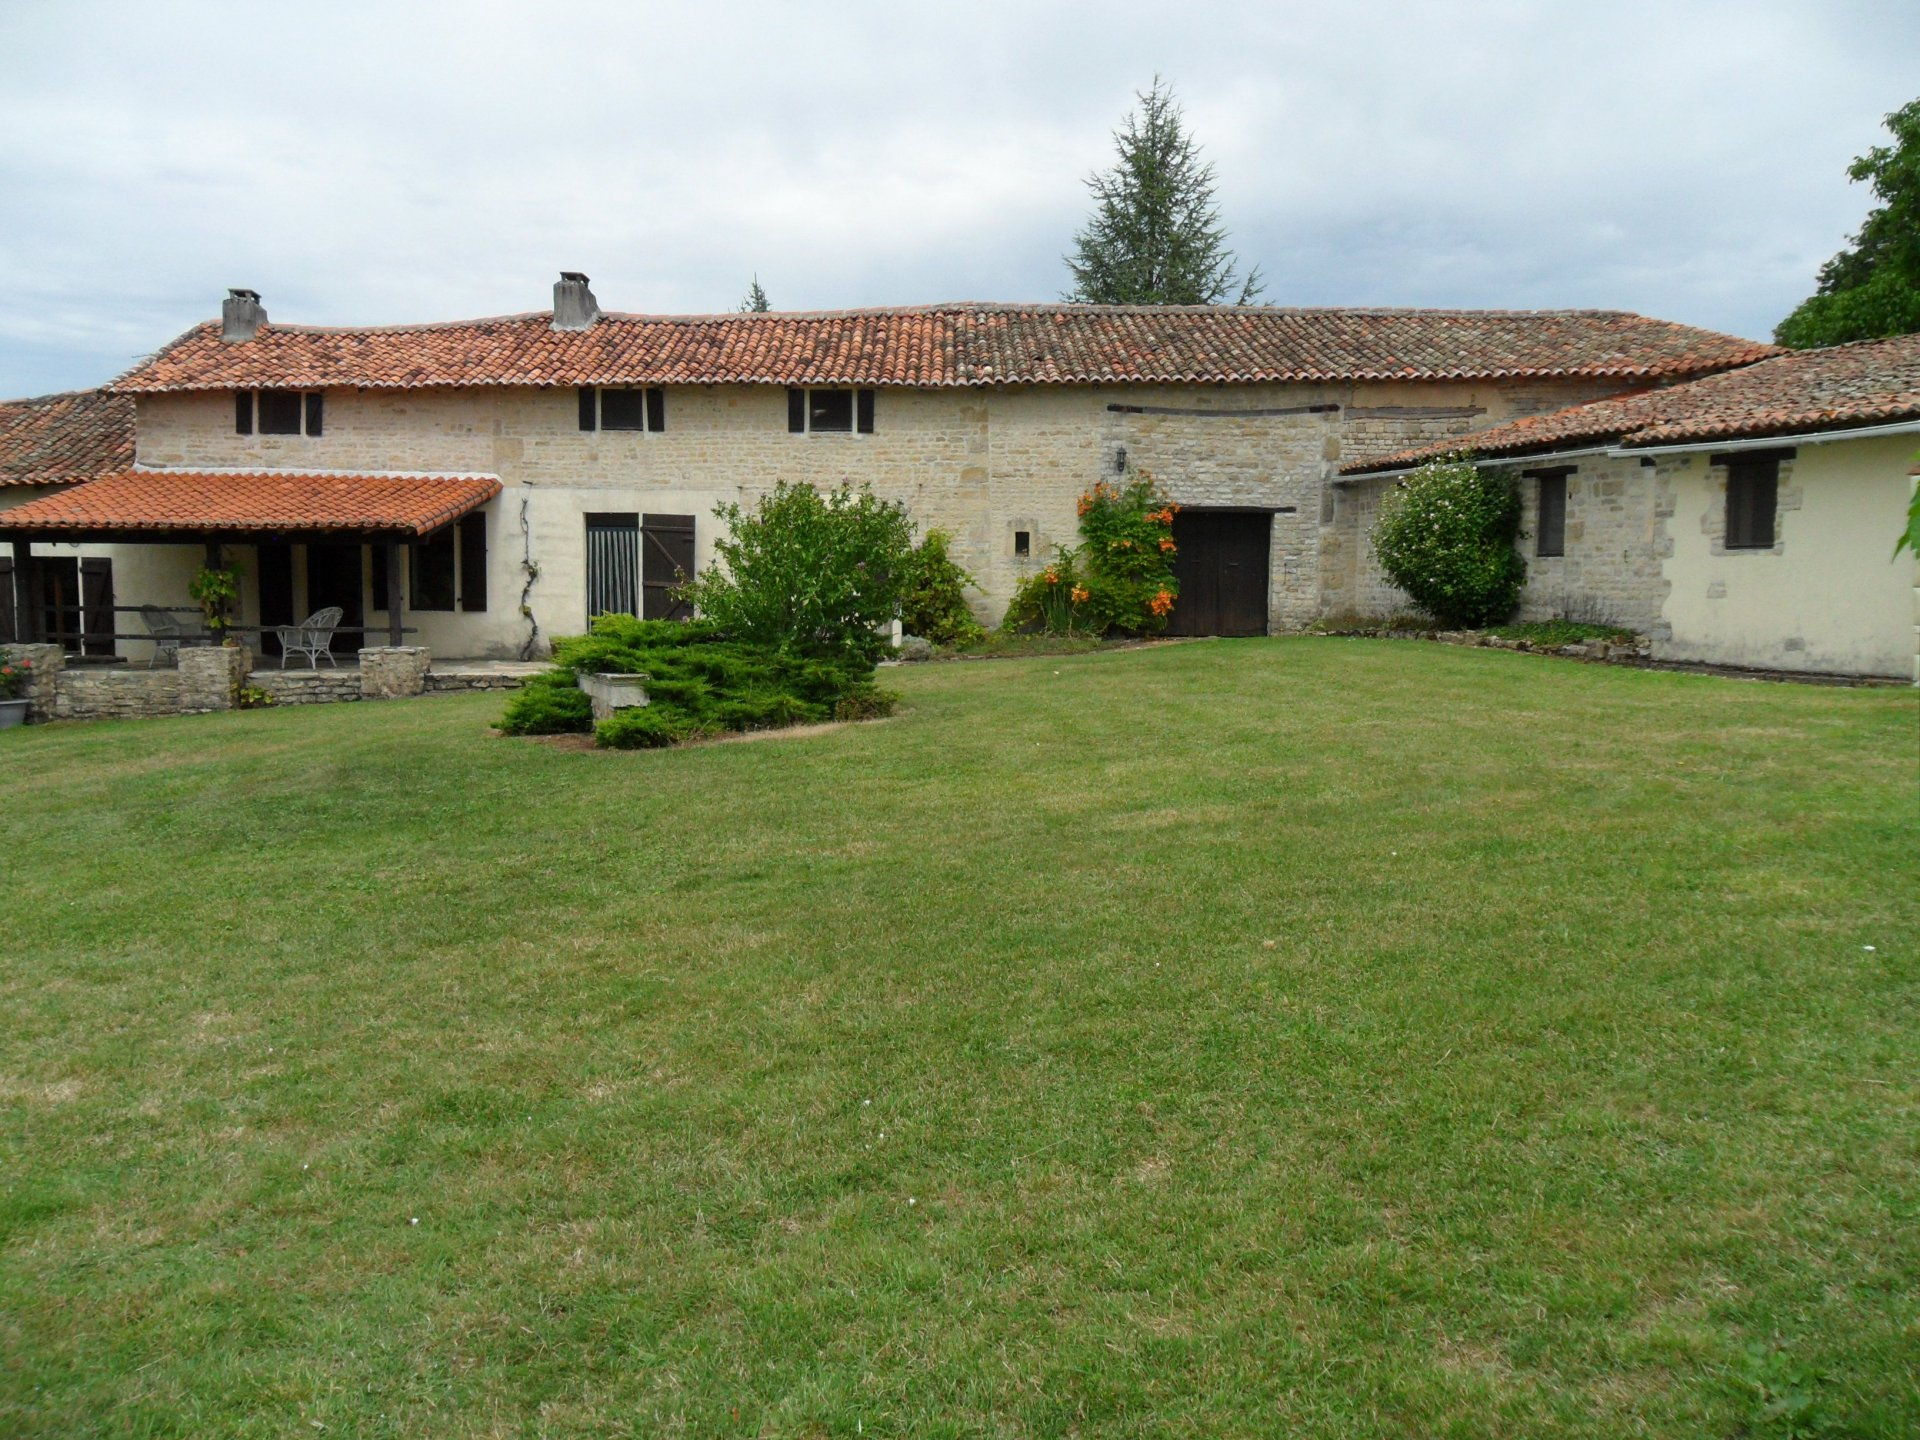 House with gite barns and swimming pool. Make a living here in France!